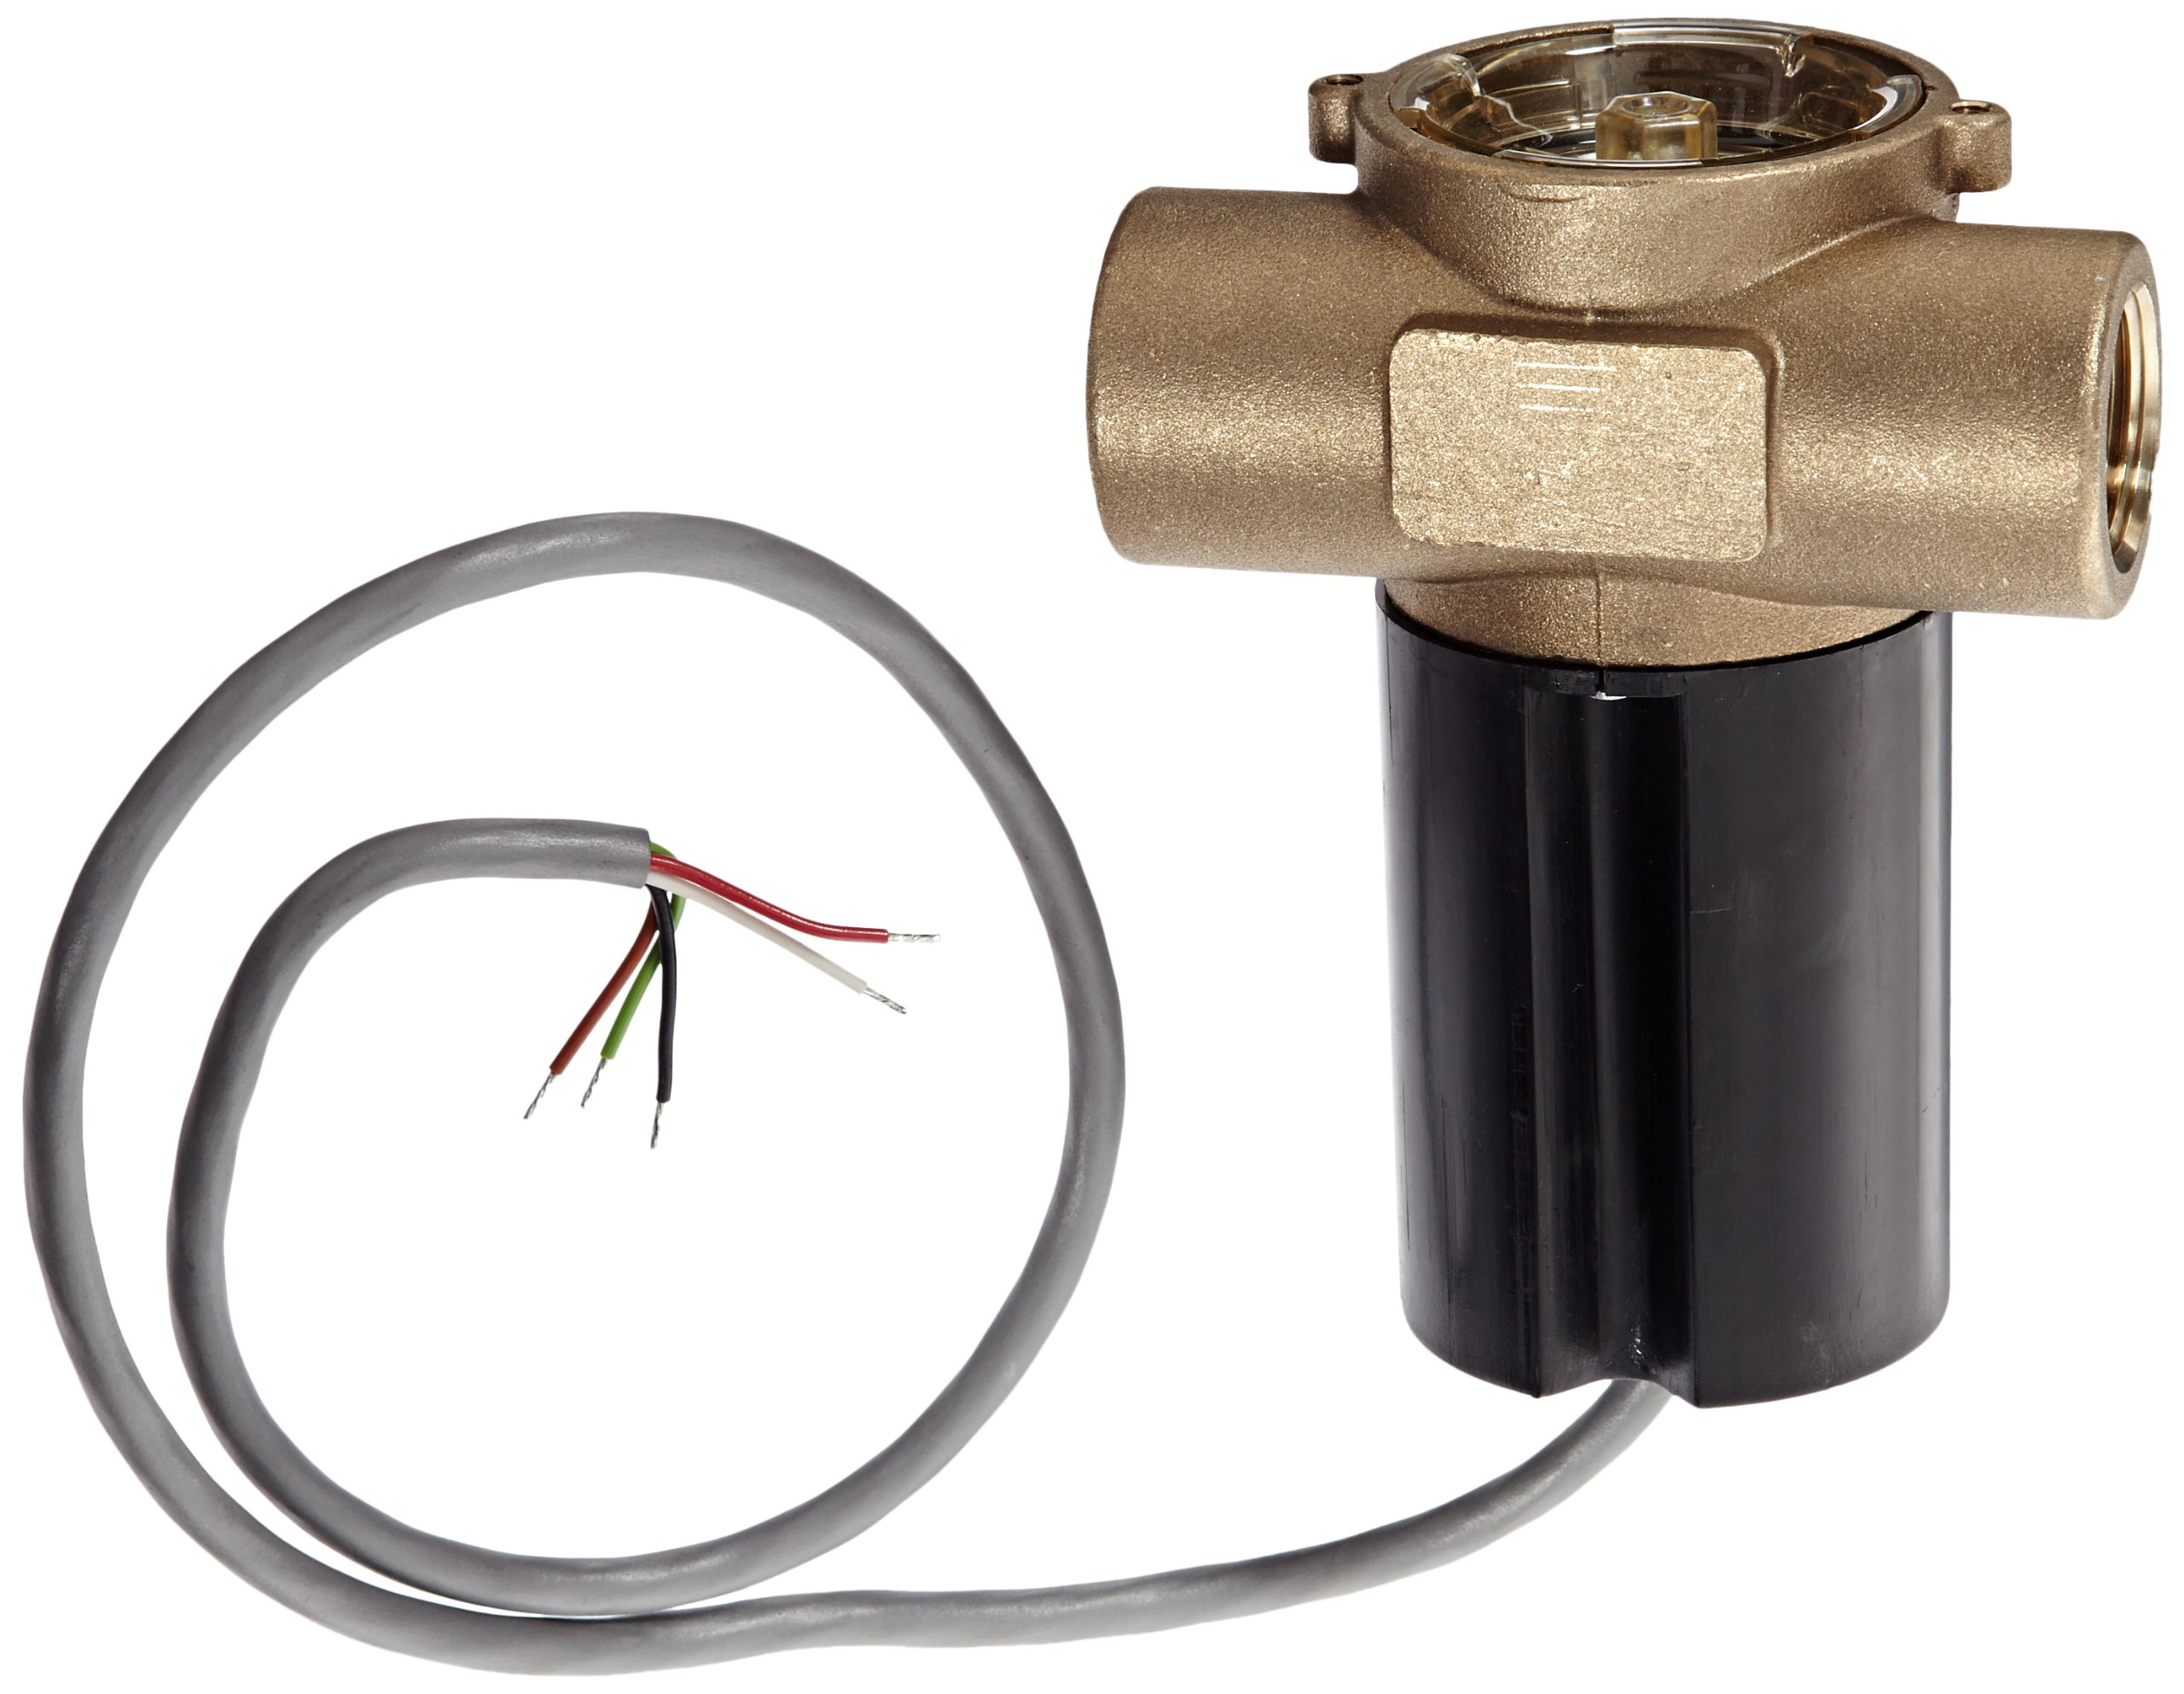 Gems Sensors RFS Series Brass Flow Sensor Switch, Inline, Rotor Type, 115 VAC Input, 5.0 - 30.0 gpm Flow Setting Adjustment Range, 3/4'' NPT Female